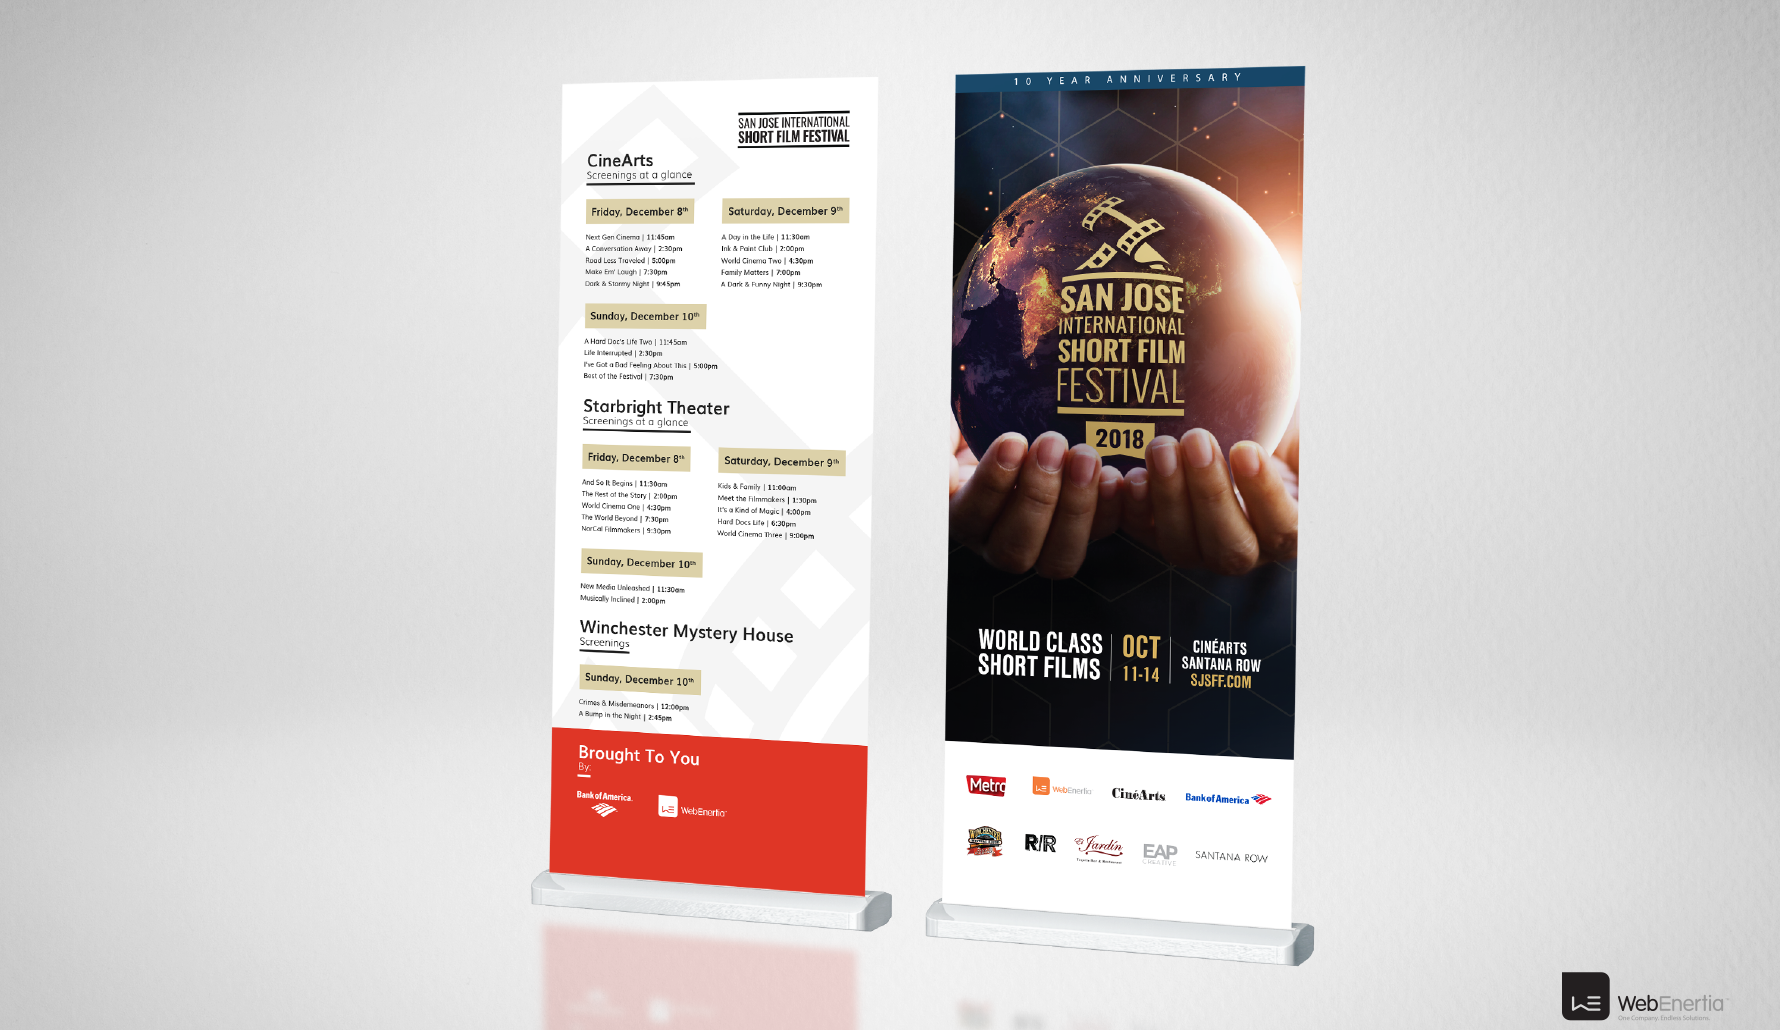 SJSSFF 2018 Campaign standing pull up banners